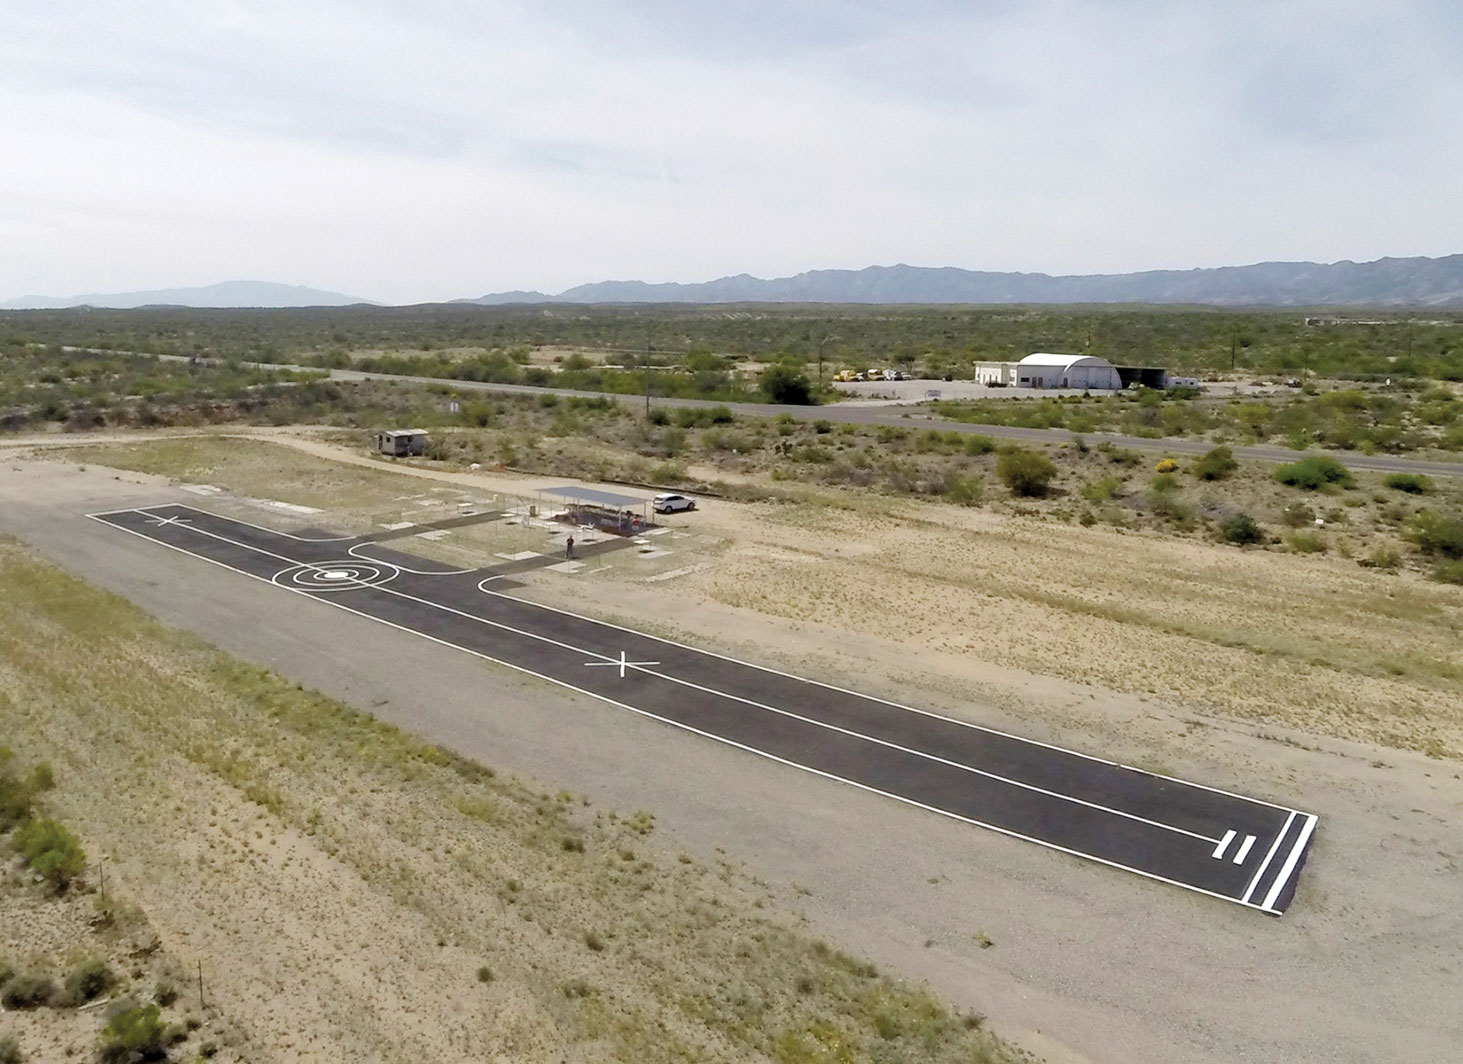 The club's San Manuel flying site as photographed from a member's quad-copter